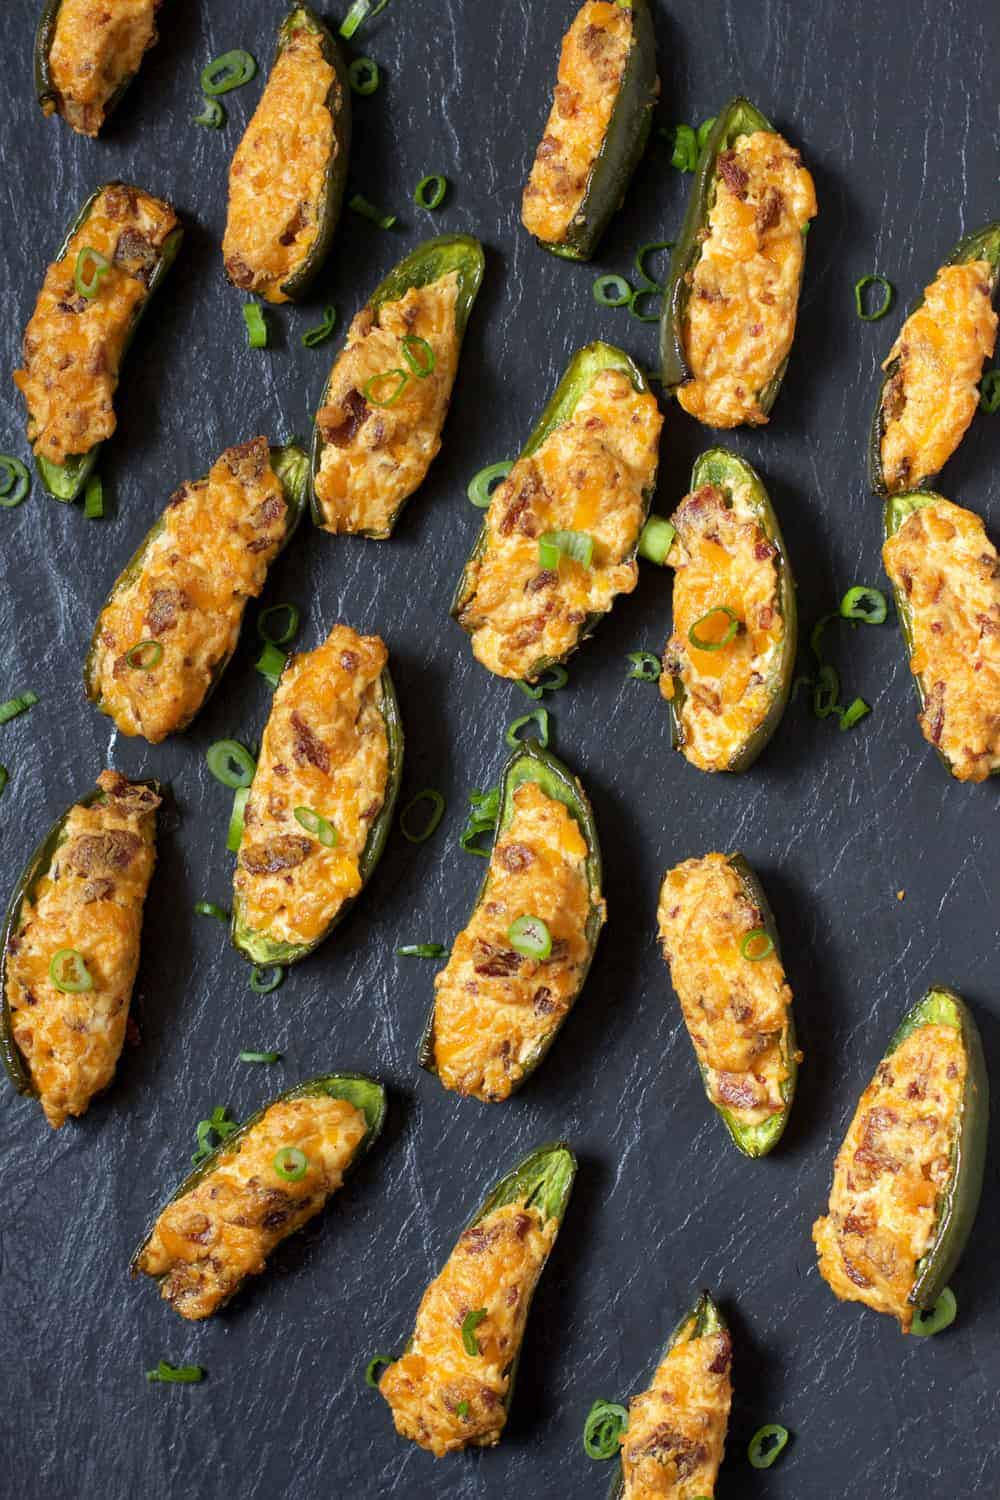 Smoked Jalapeño Poppers with Smoked Bacon